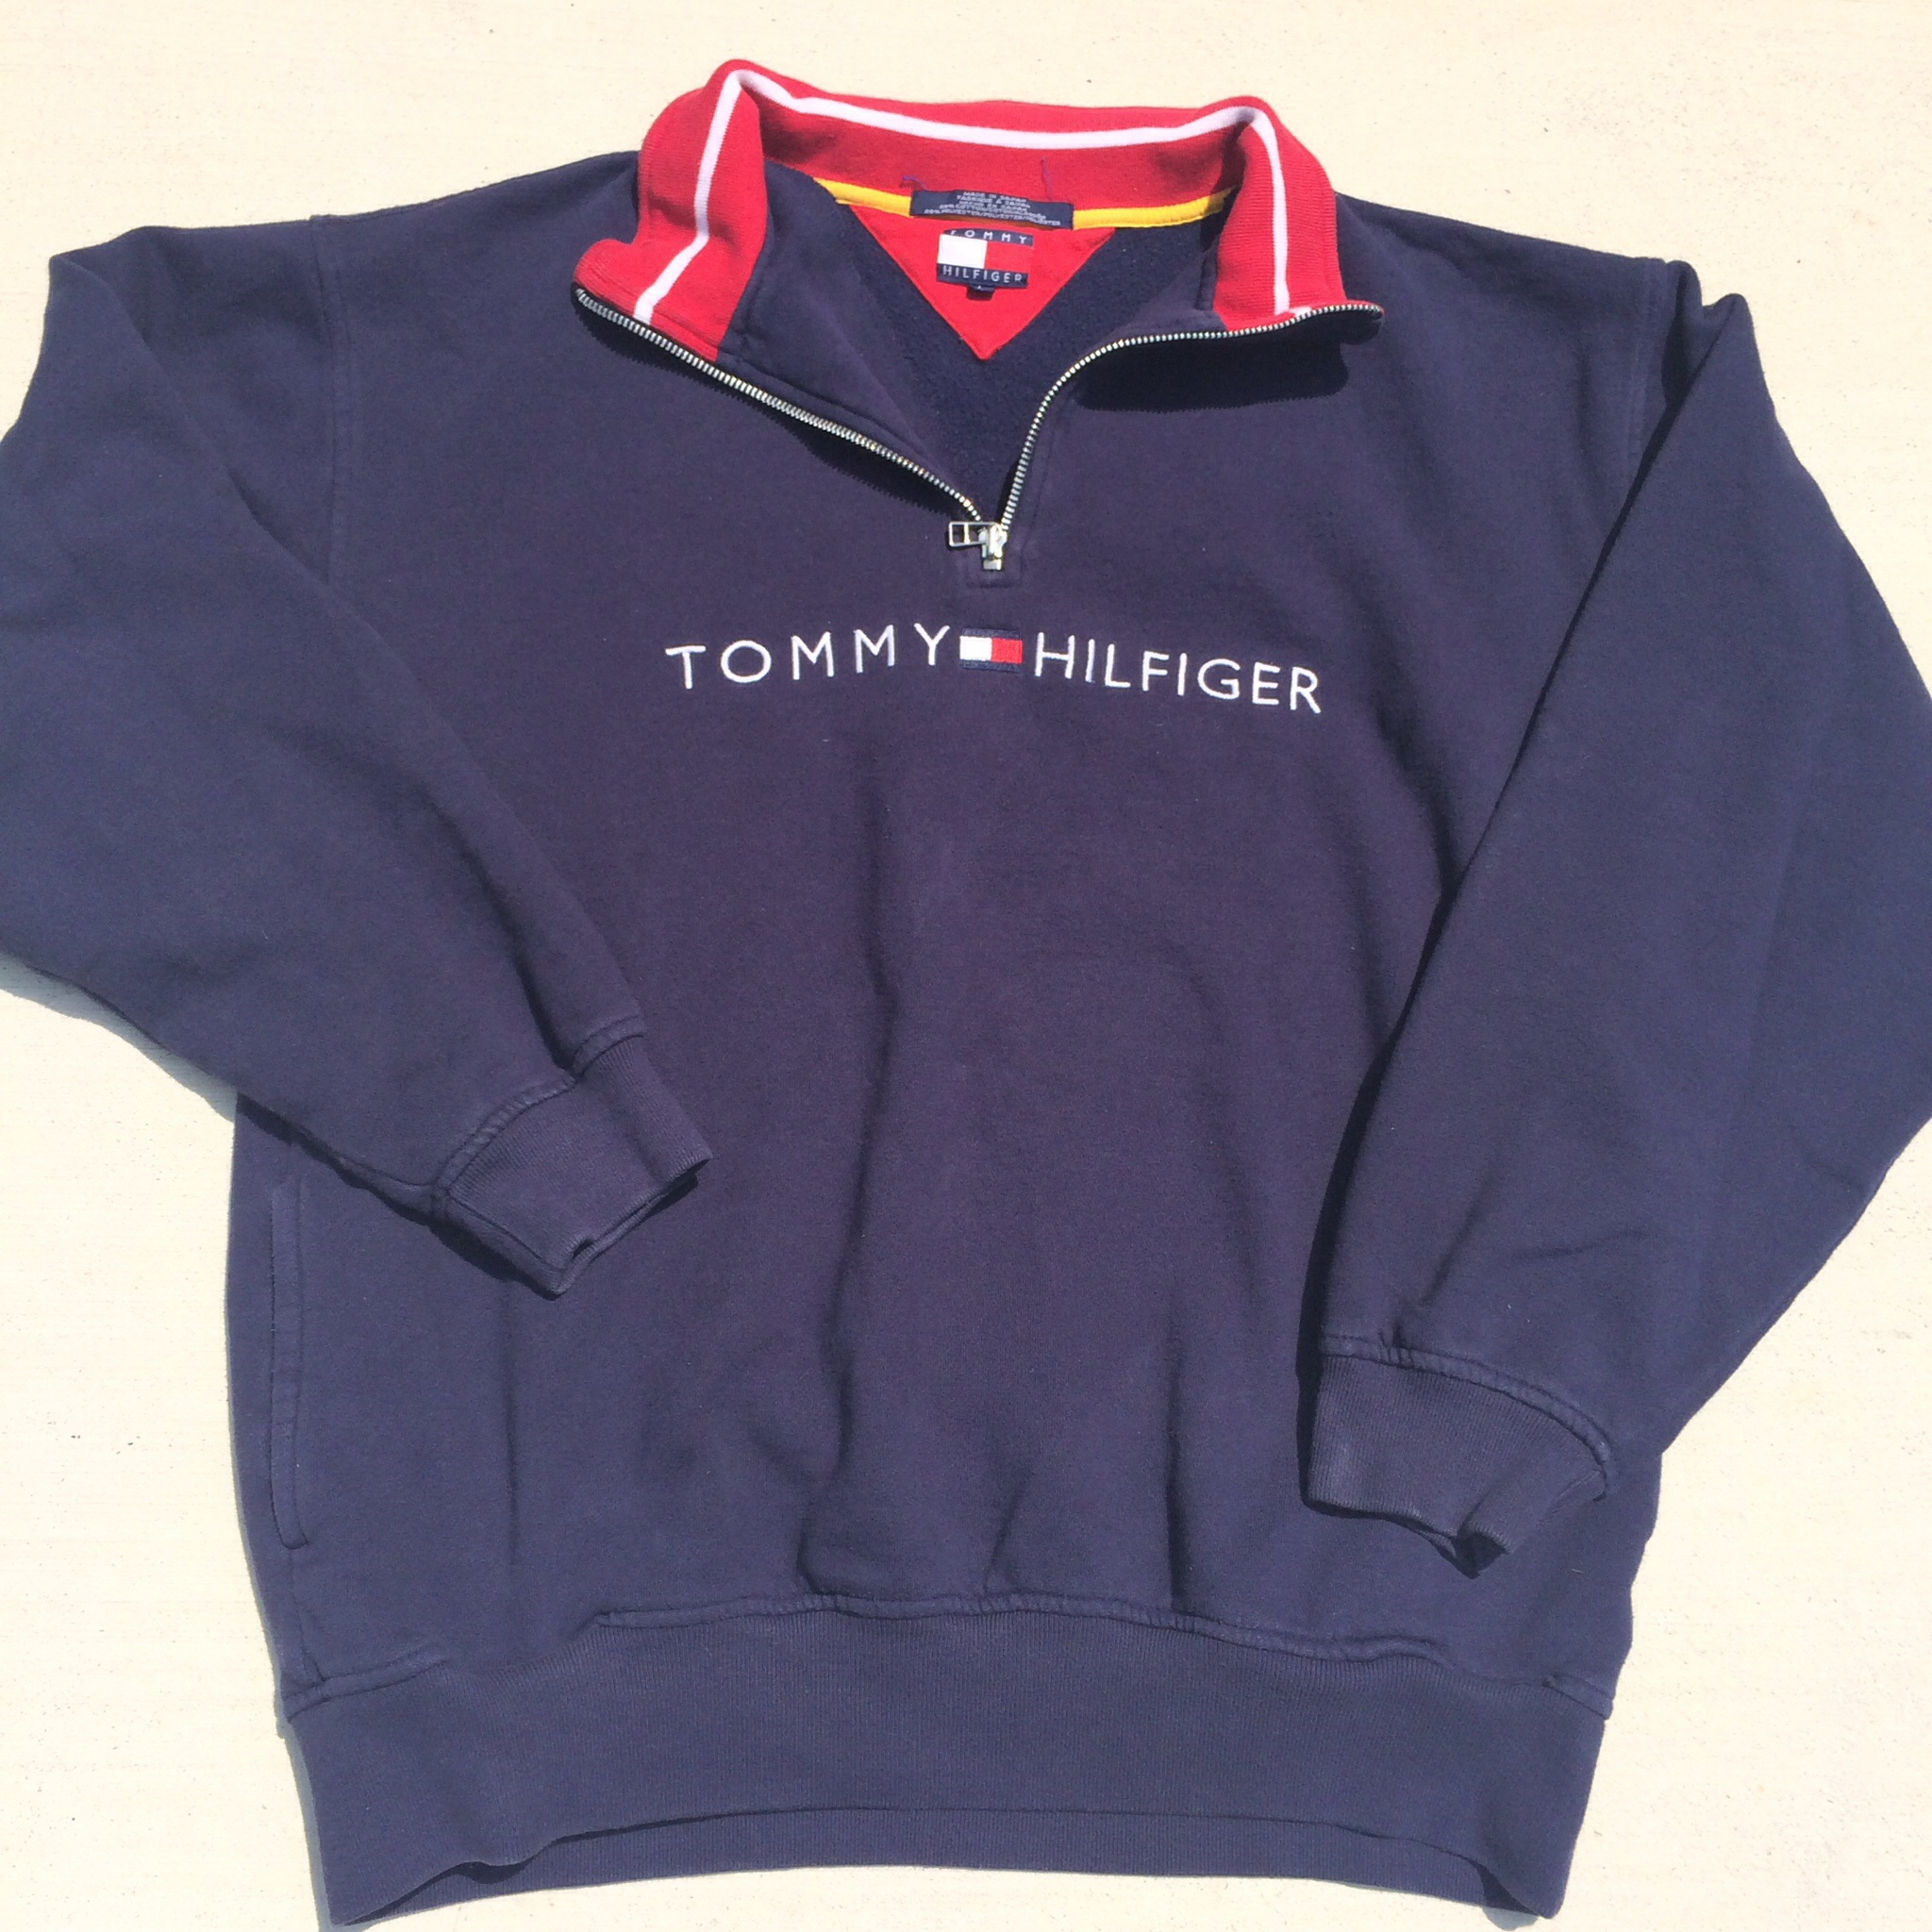 797738eda *SOLD OUT* Vintage Tommy Hilfiger Pullover Sweatshirt on Storenvy